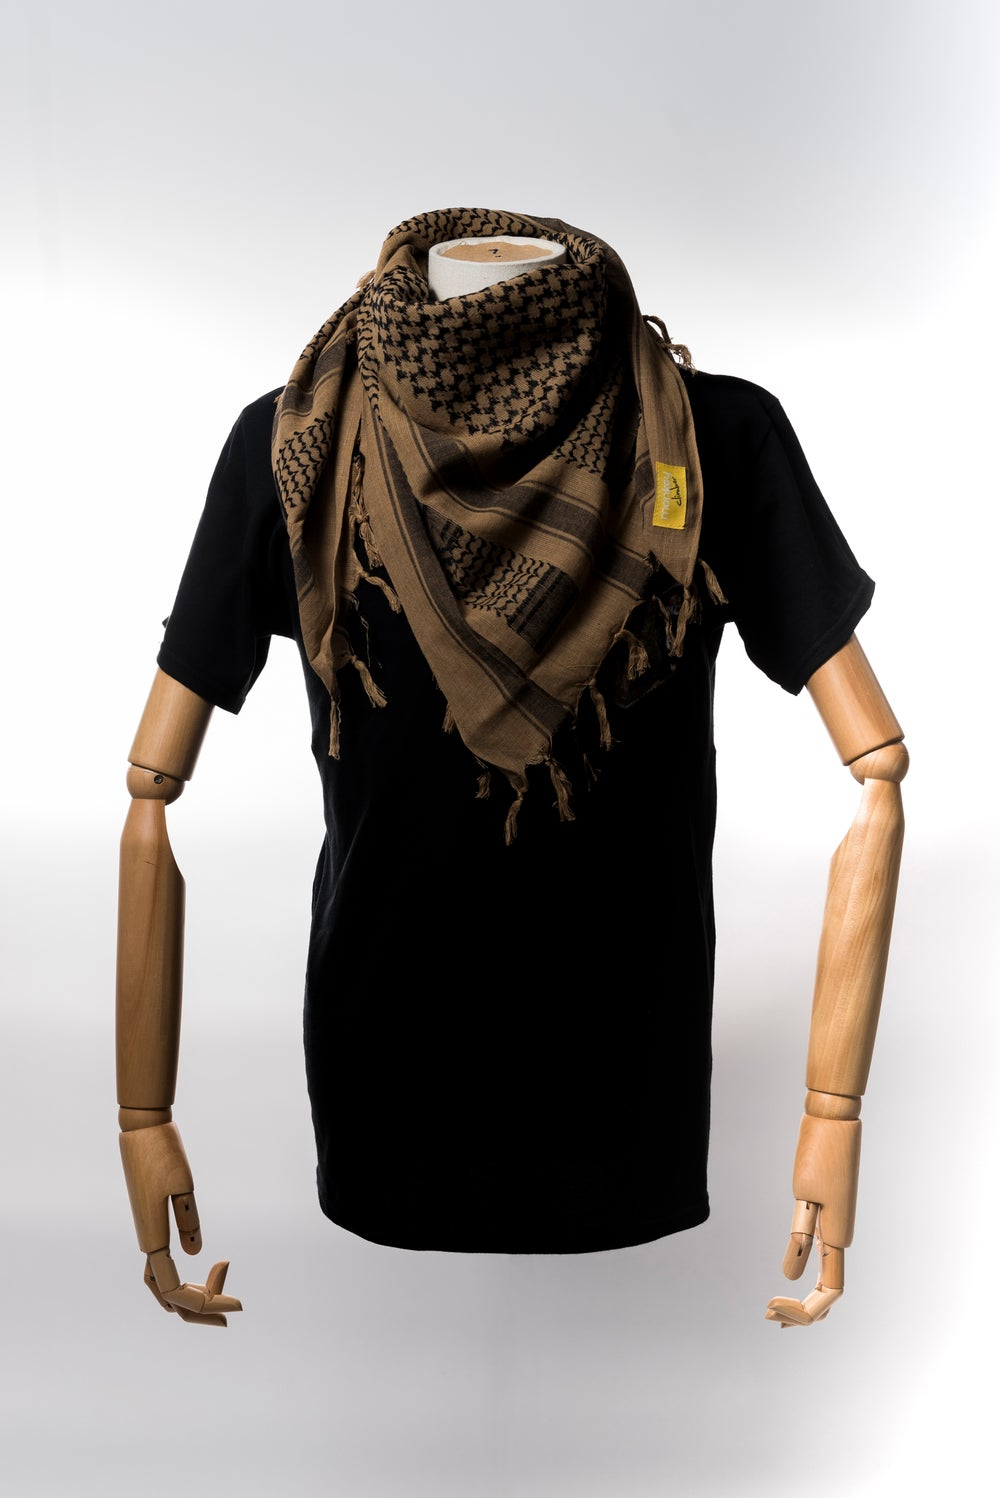 Image of Monkey Climber Shemagh Scarf I Sand & Black